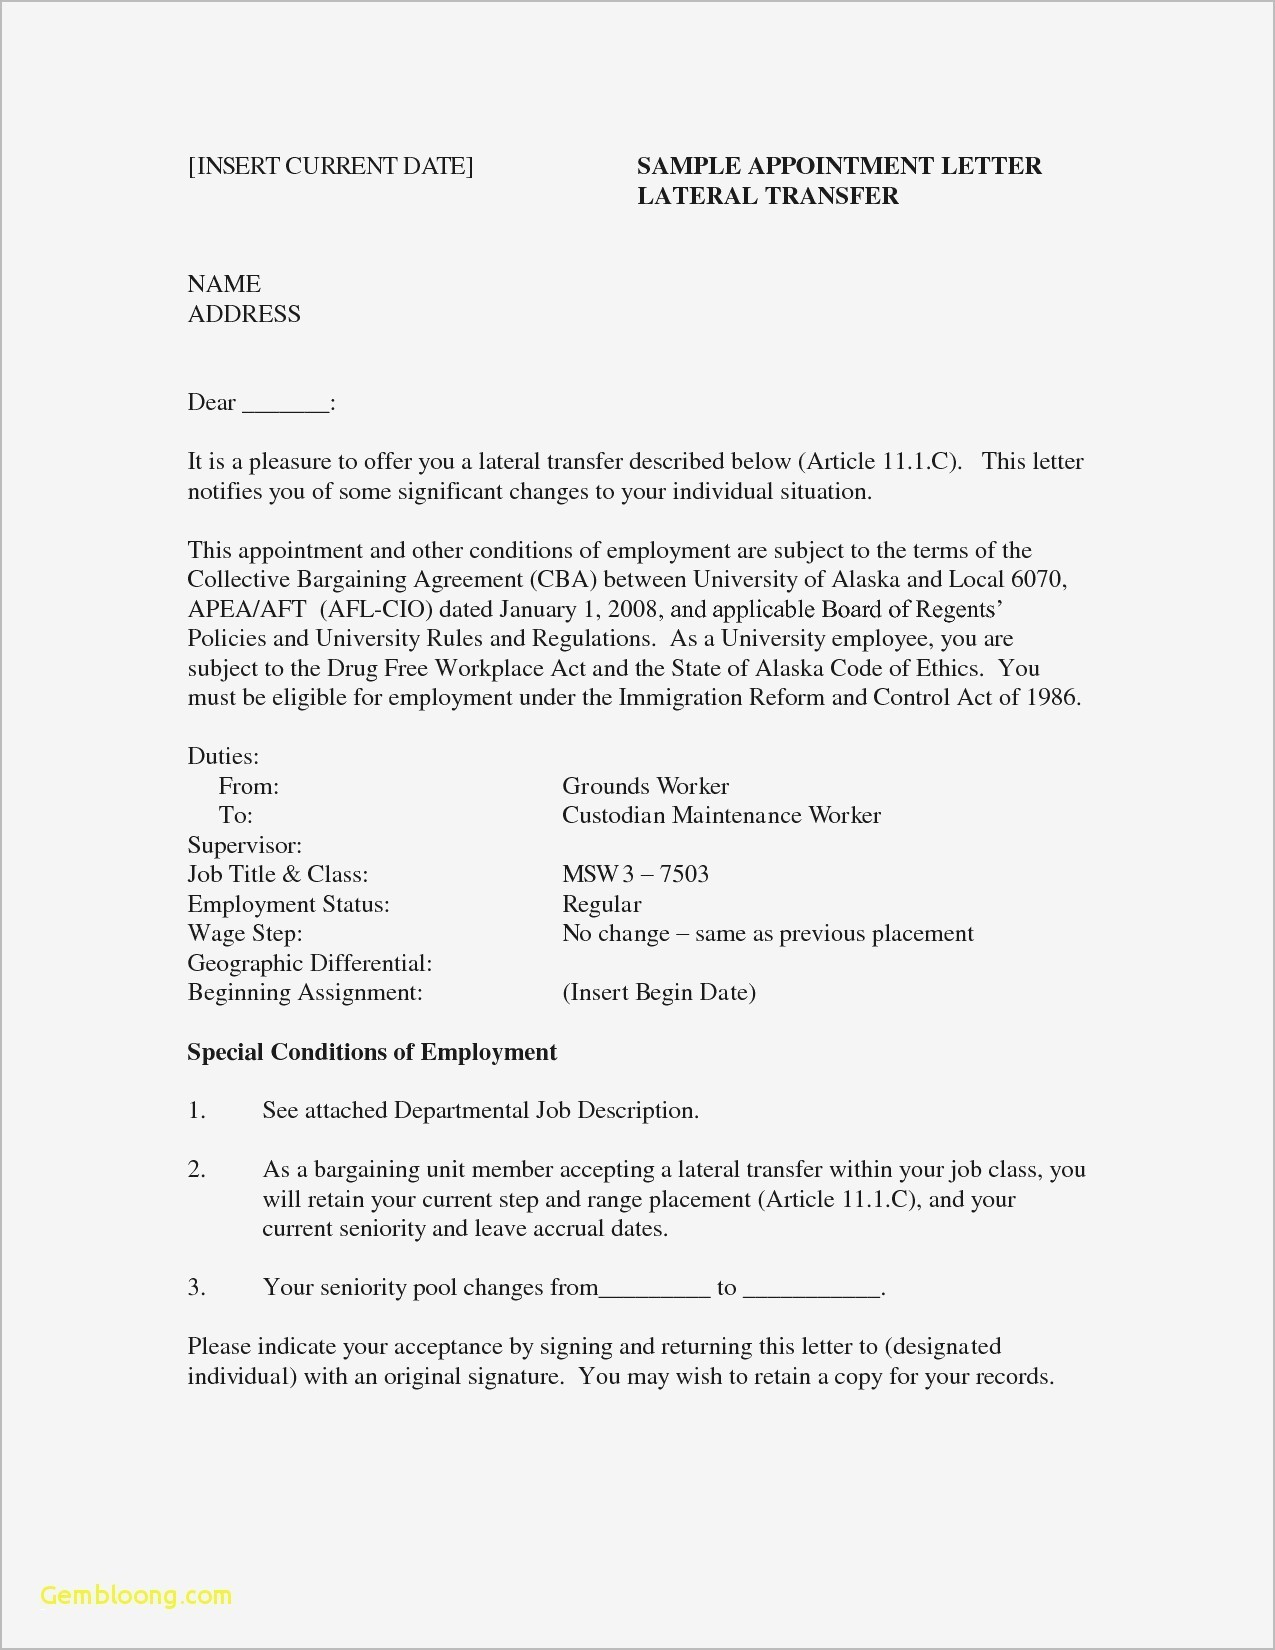 theatrical resume template example-Theatre resume template inspirational best actor resume unique actor resumes 0d acting resume format 5-g